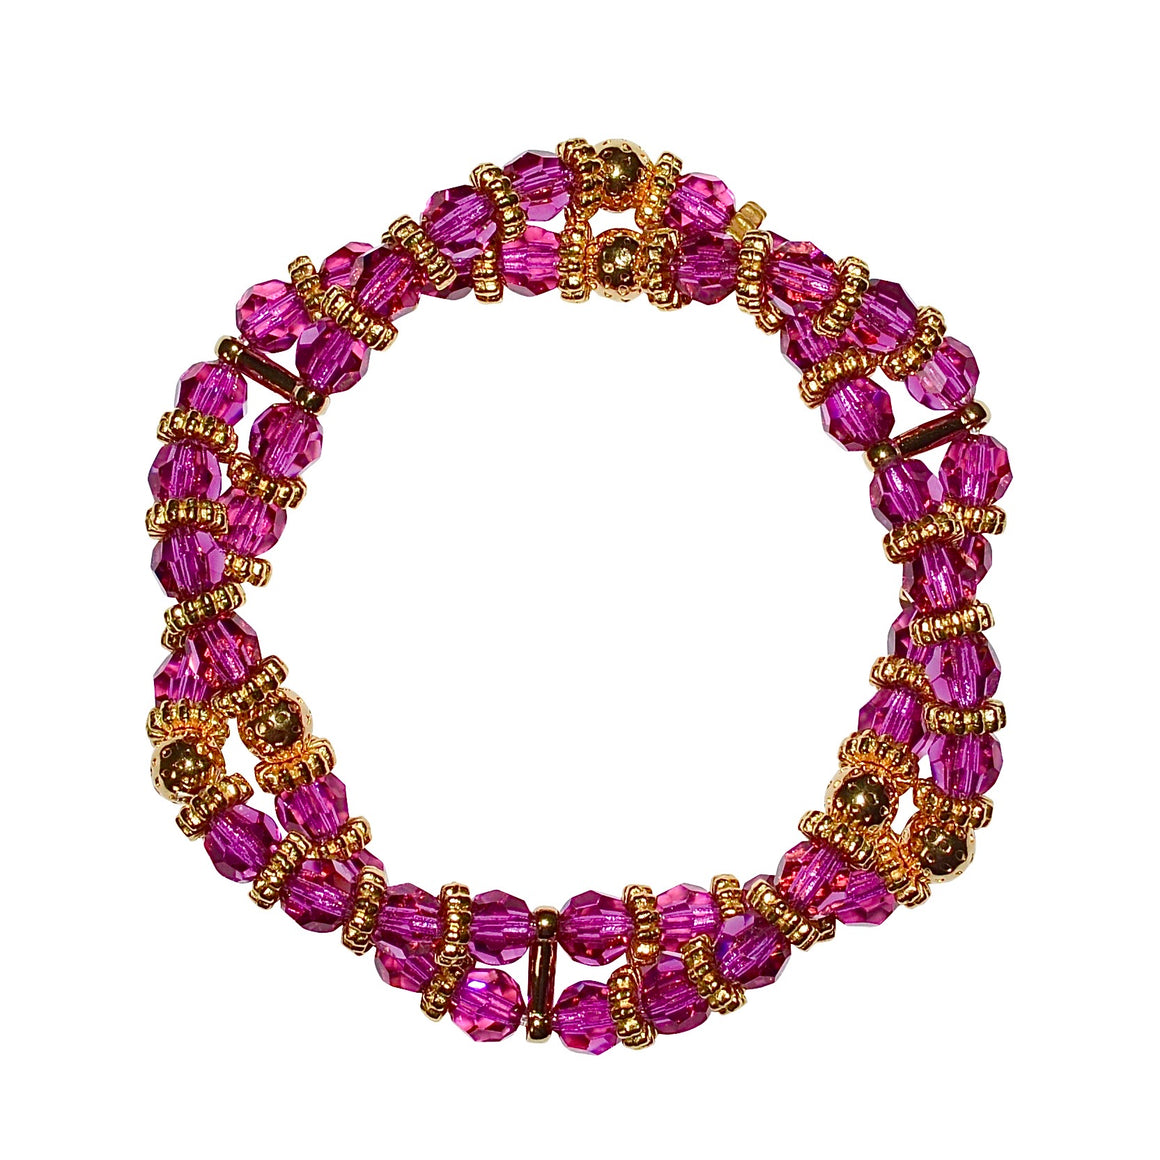 BIANCA LUCITE TWISTED BRACELET IN FUCHSIA